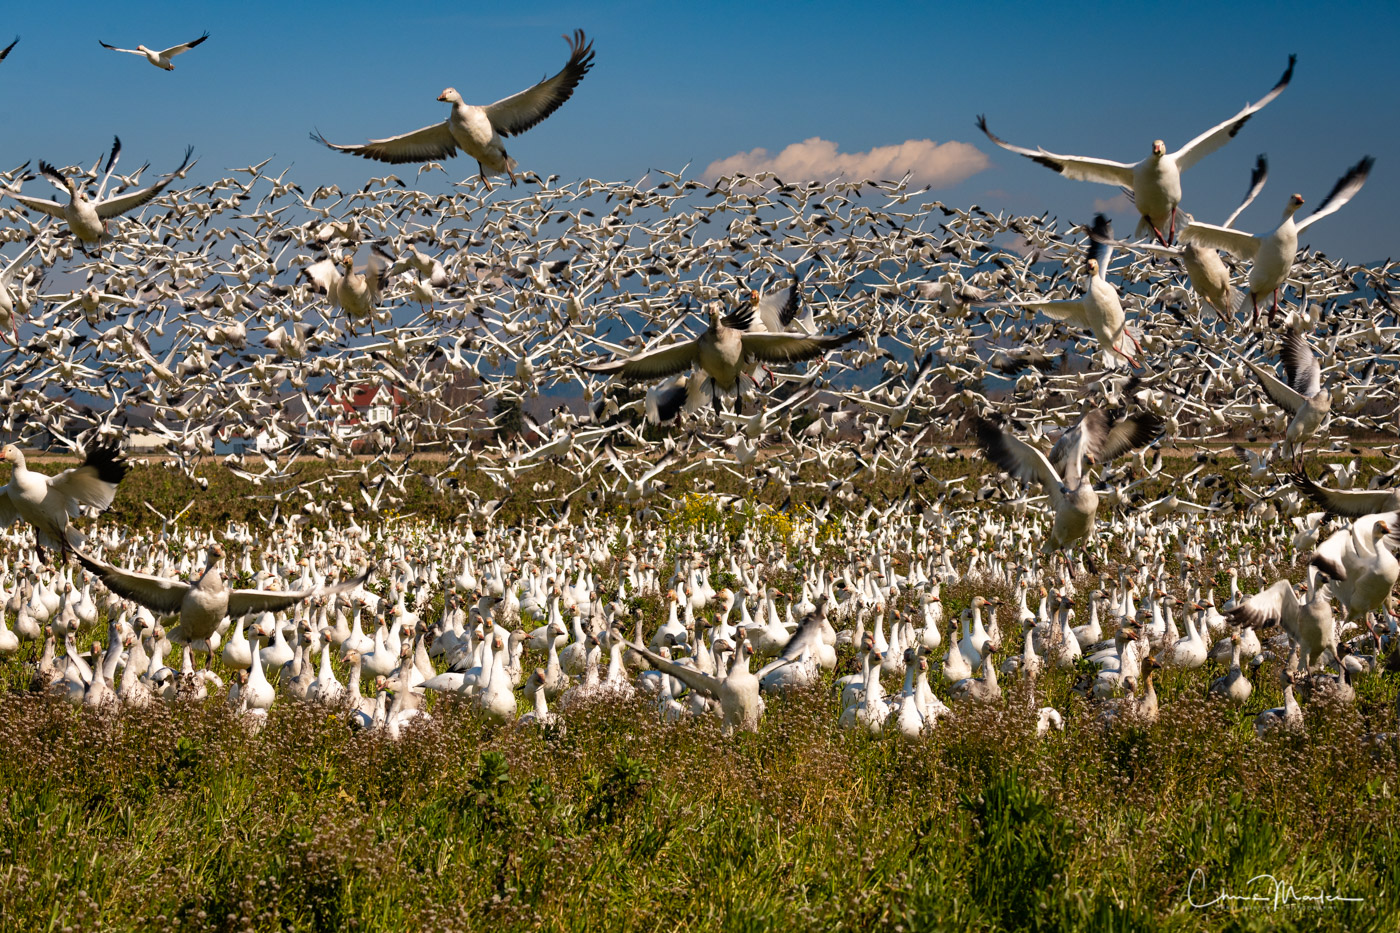 Skagit Valley, snow geese, frenzy, take off, birds, photo